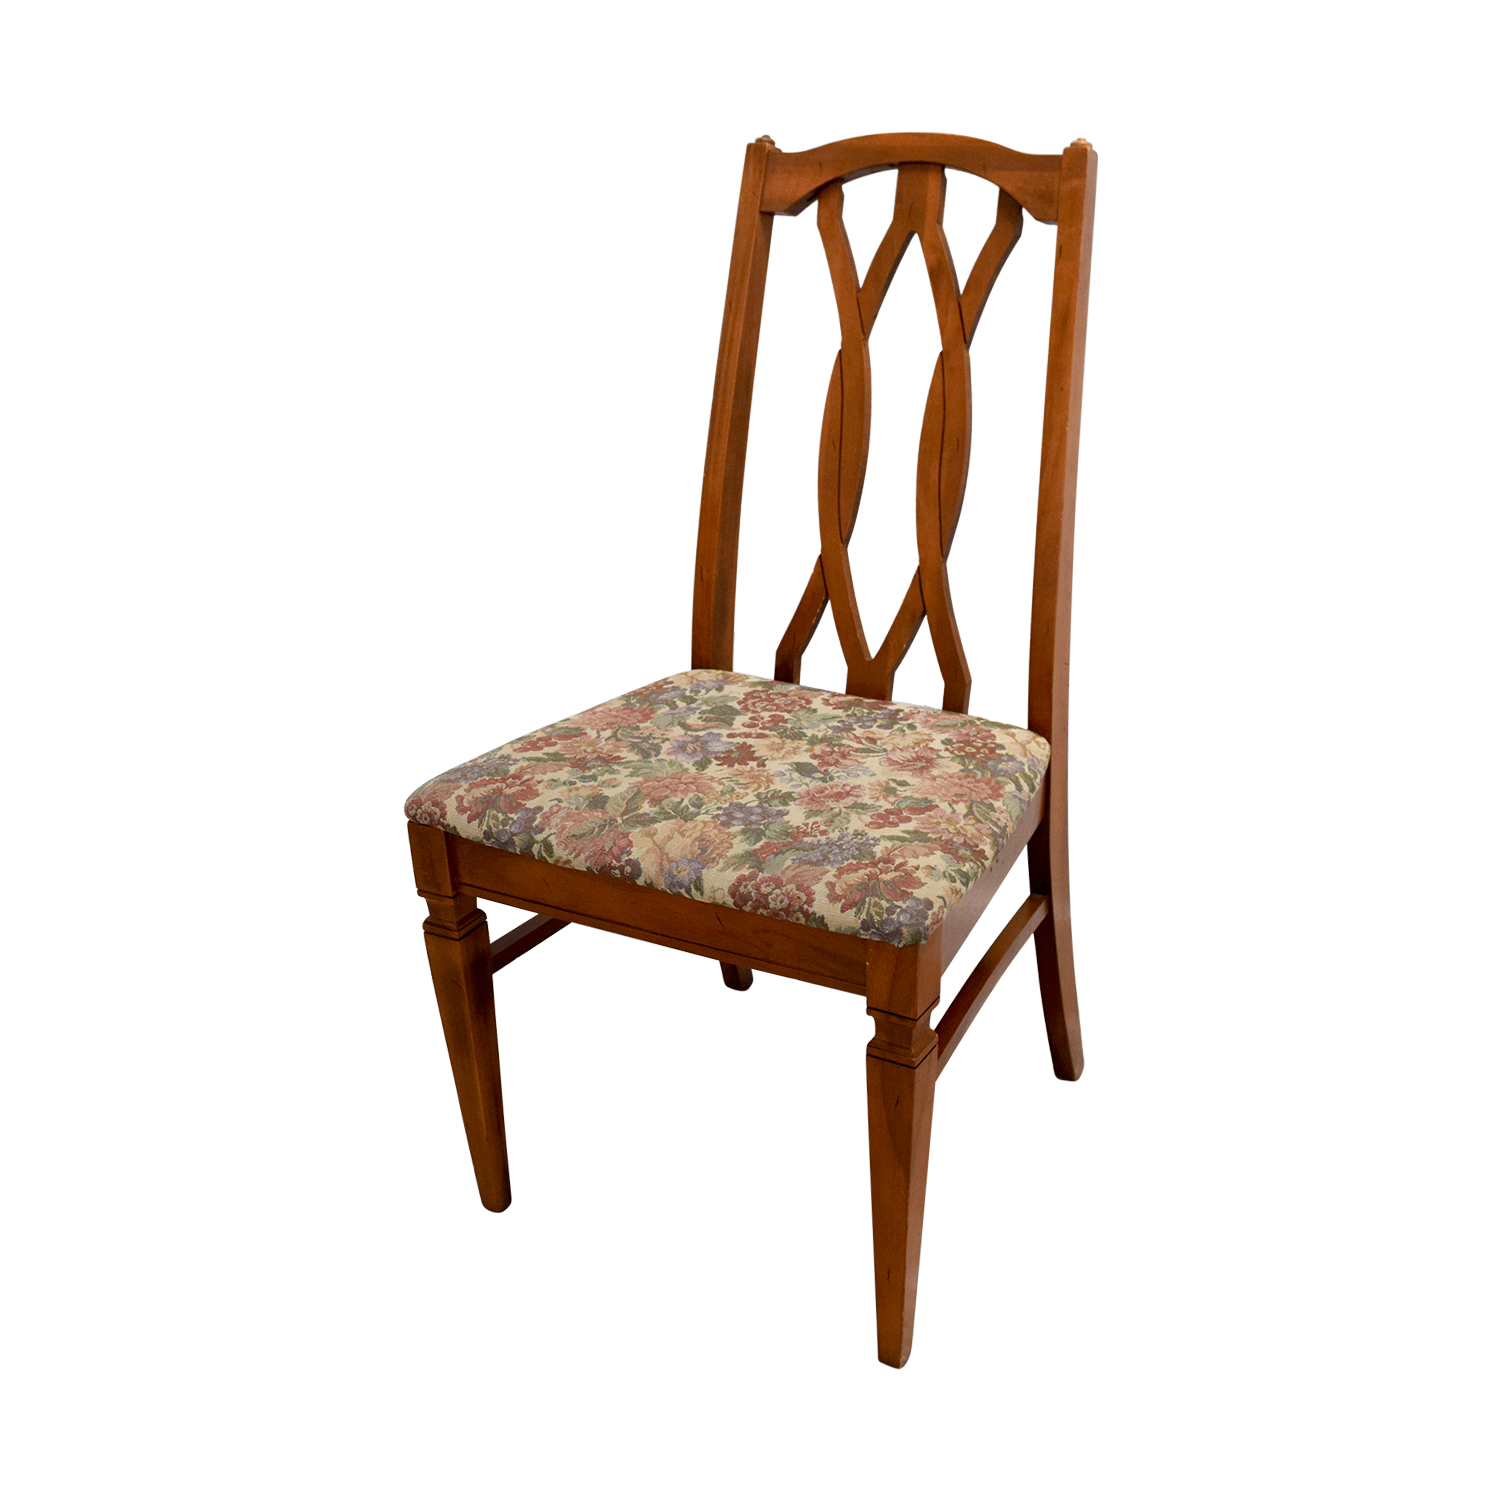 Upholstered Kitchen Chairs 83 Off Wood Kitchen Table And Floral Upholstered Chairs